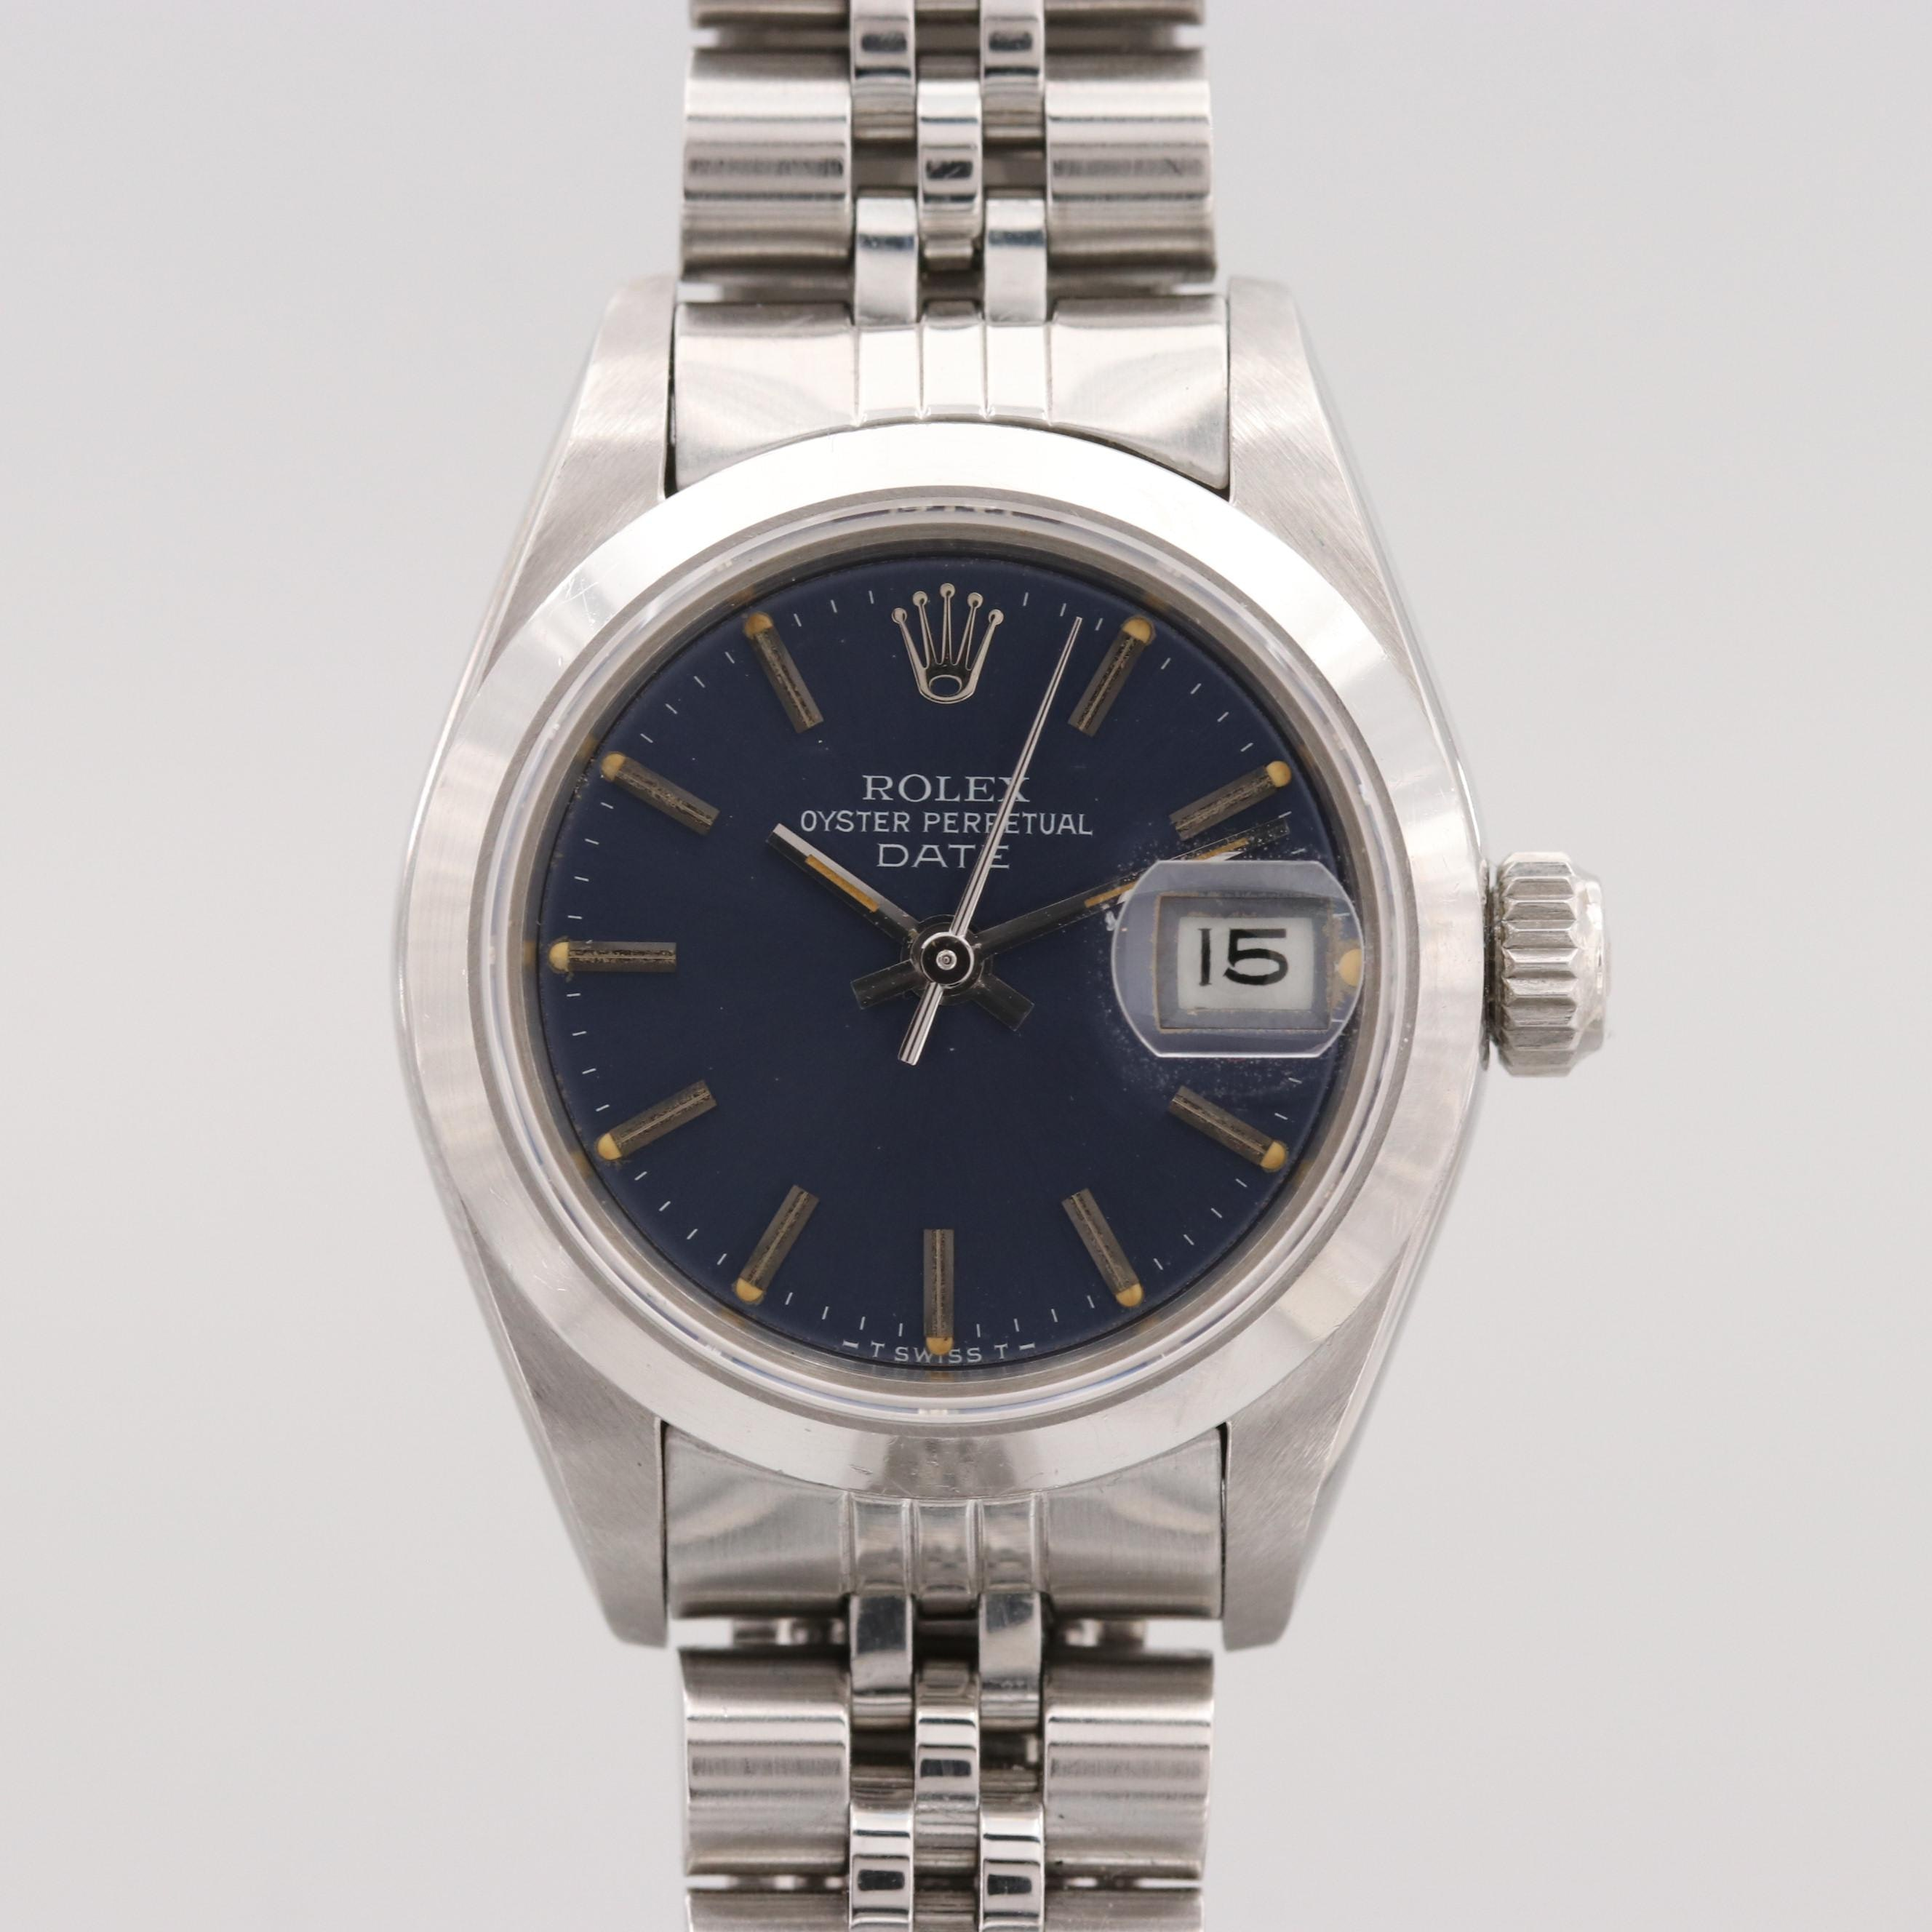 Rolex Date Stainless Steel Wristwatch, 1984